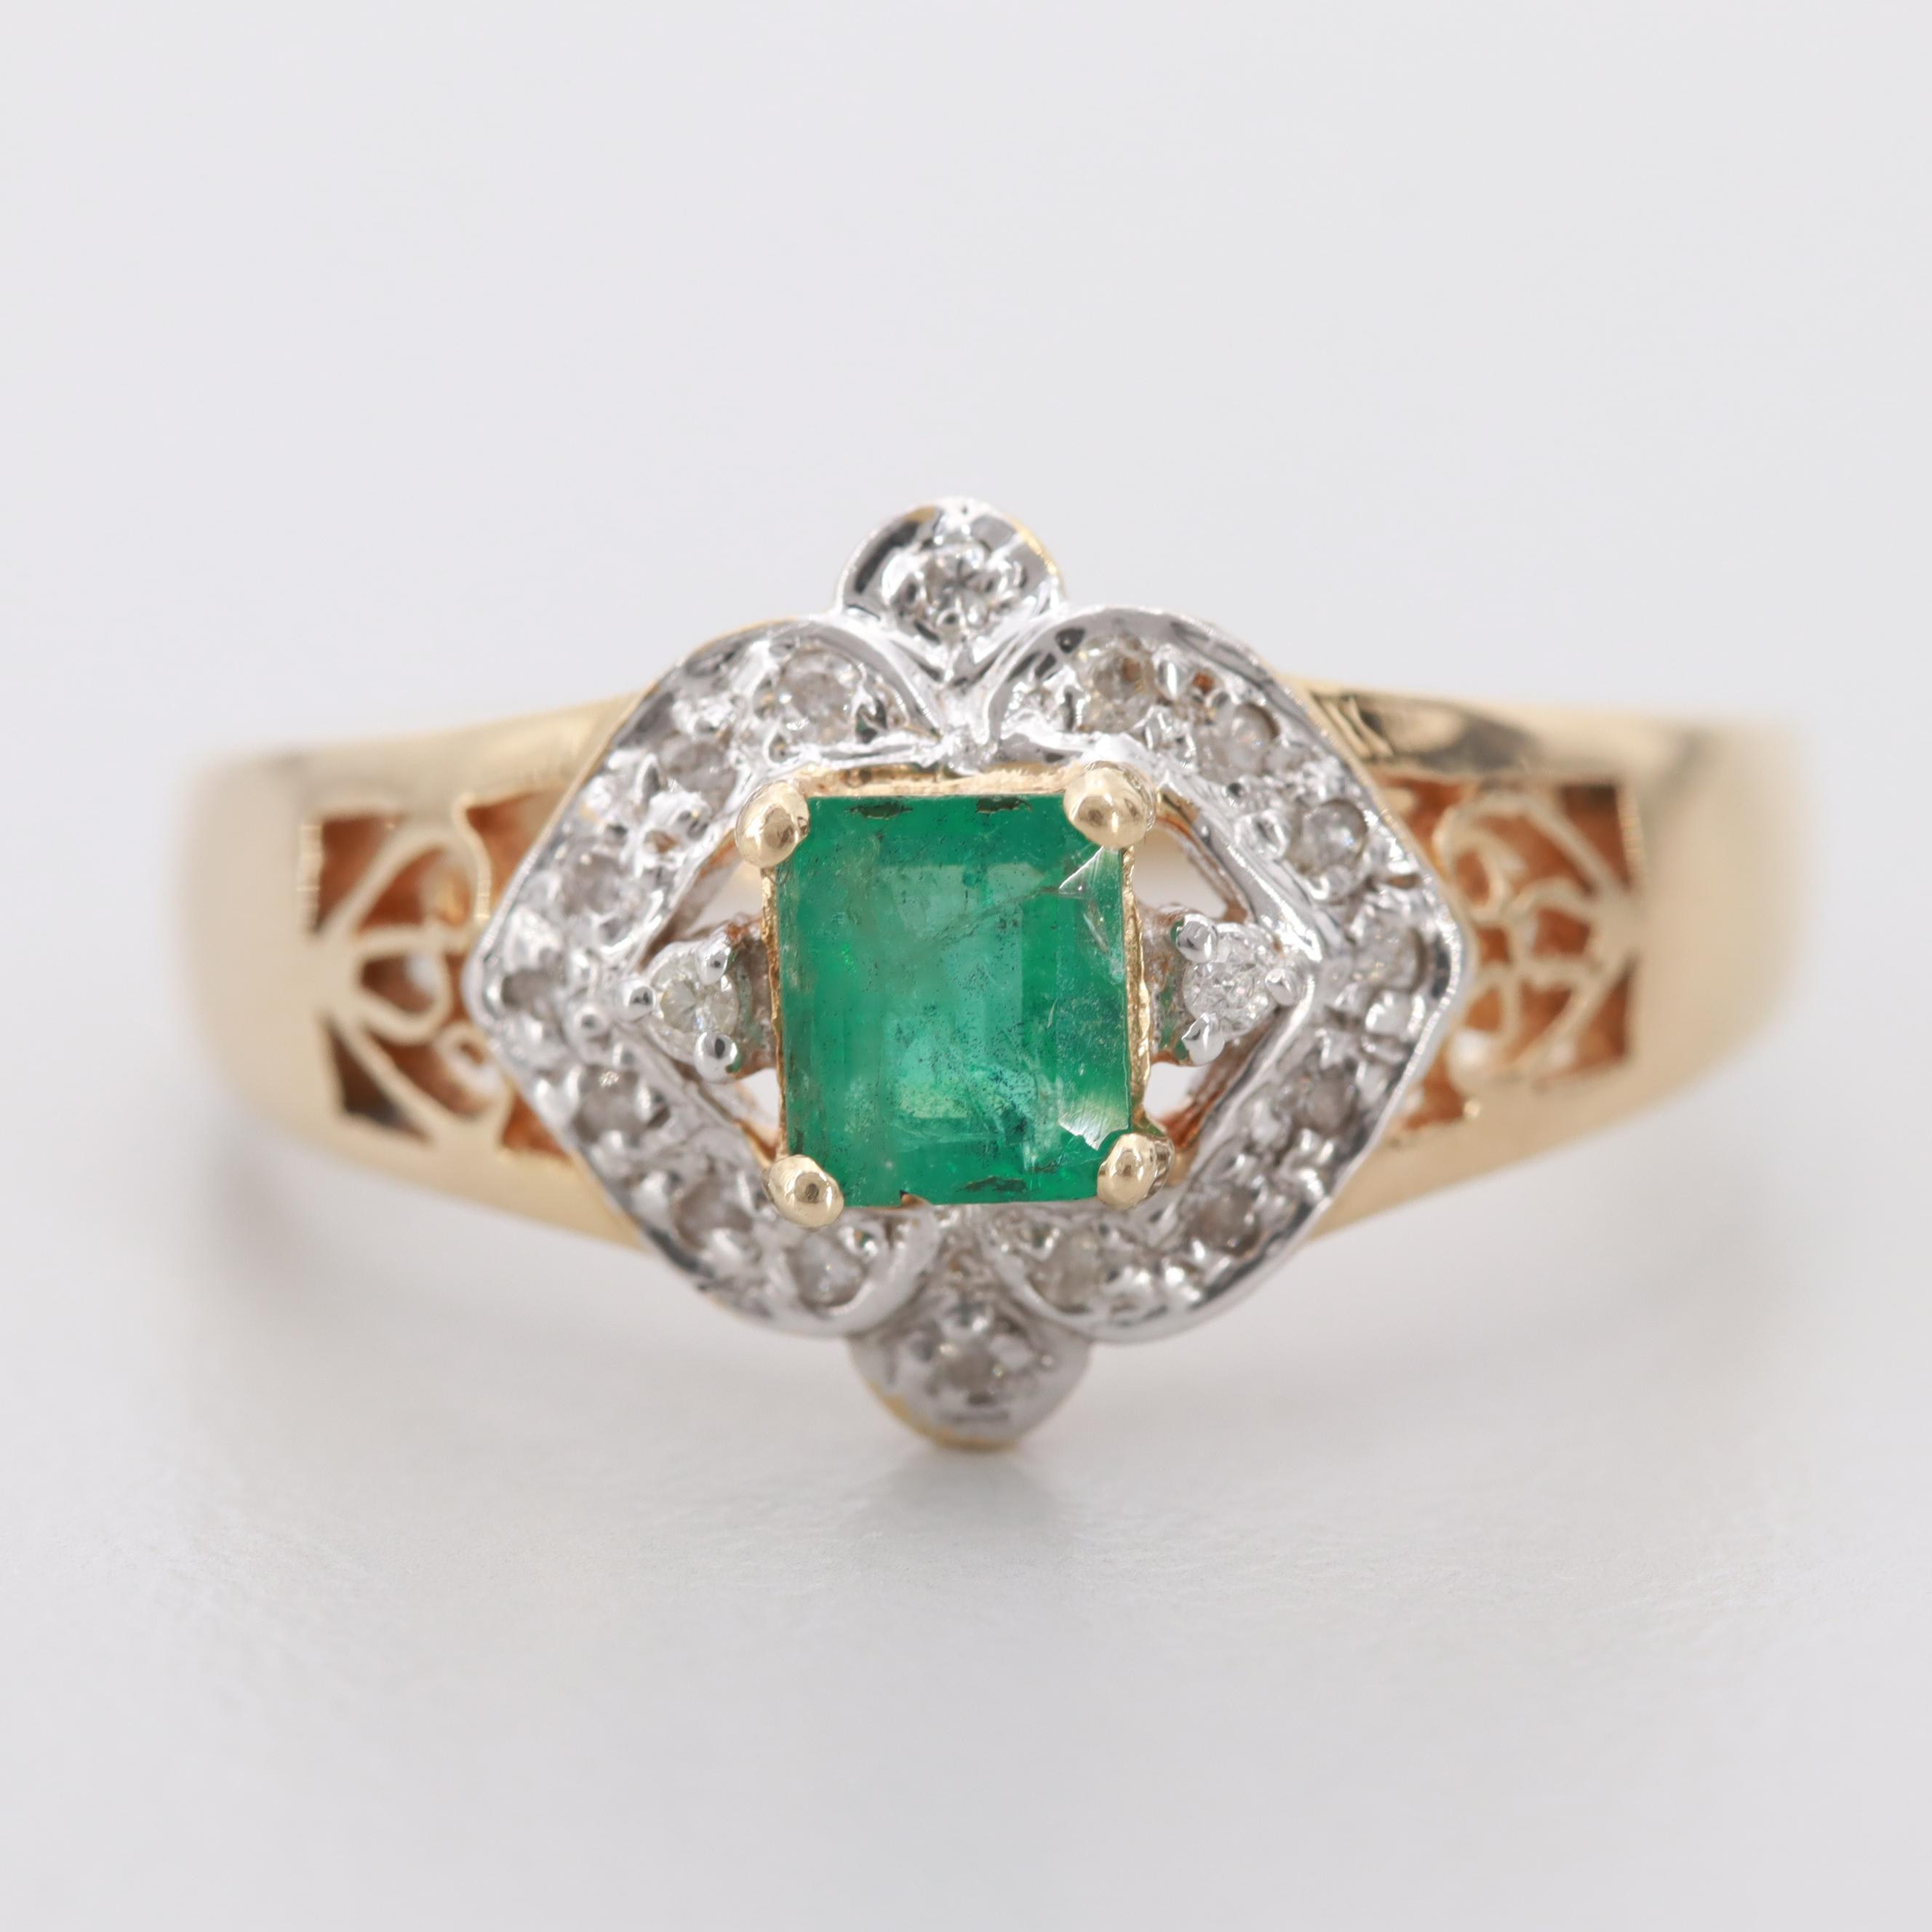 14K Yellow Gold and White Gold Emerald and Diamond Ring